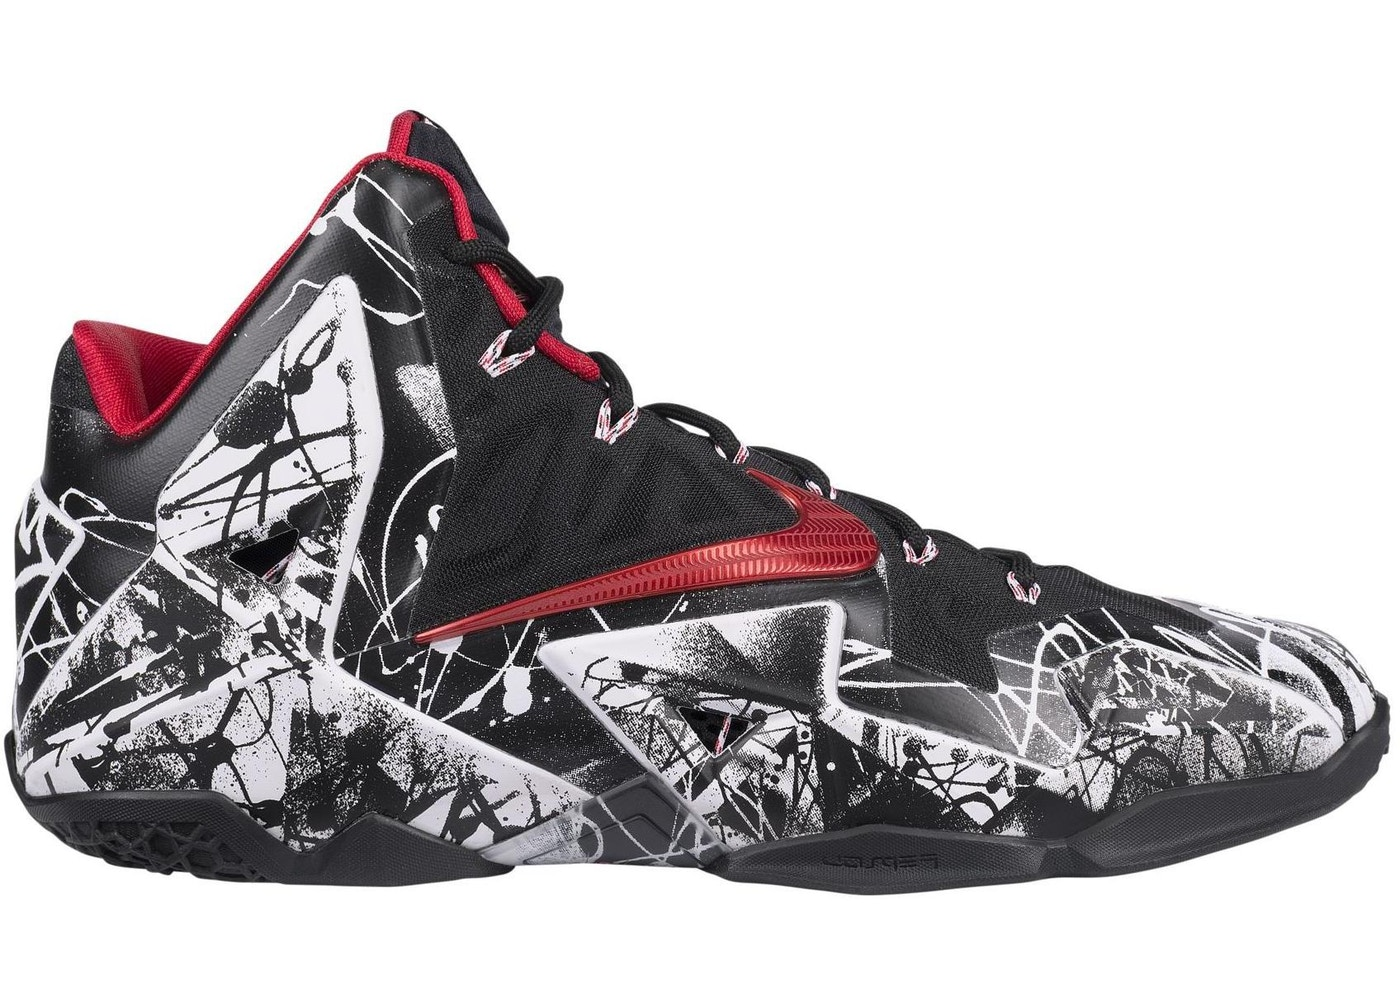 hot sale online 3da38 58986 LeBron 11 Graffiti